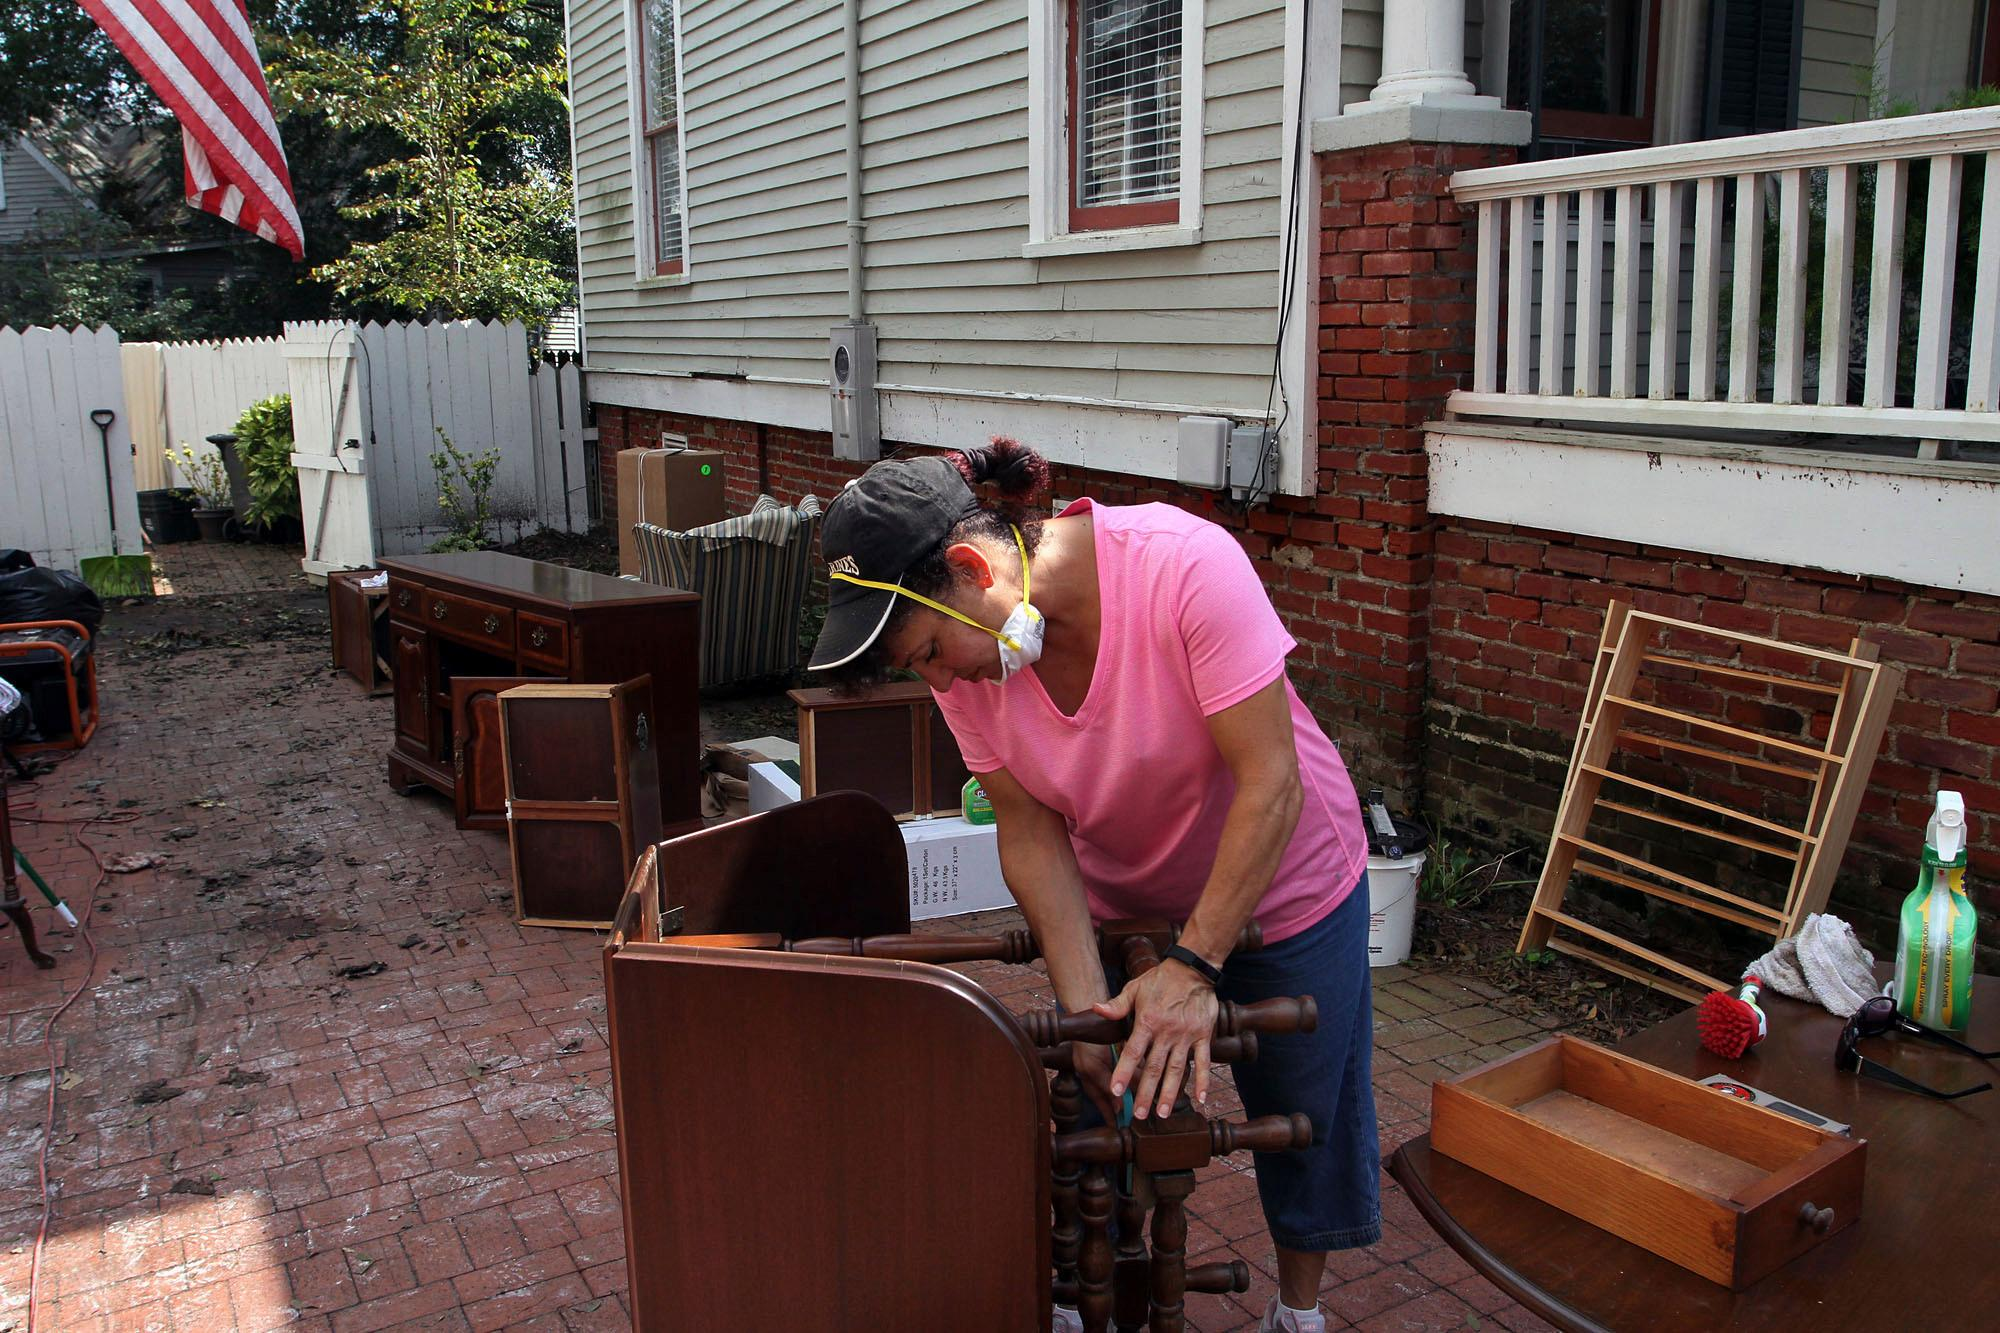 Volunteer Rita DeSanno helps clean furniture that was flooded at a home on Craven Street in New Bern, N.C., Thursday, Sept. 20, 2018. (Gray Whitley/Sun Journal via AP)